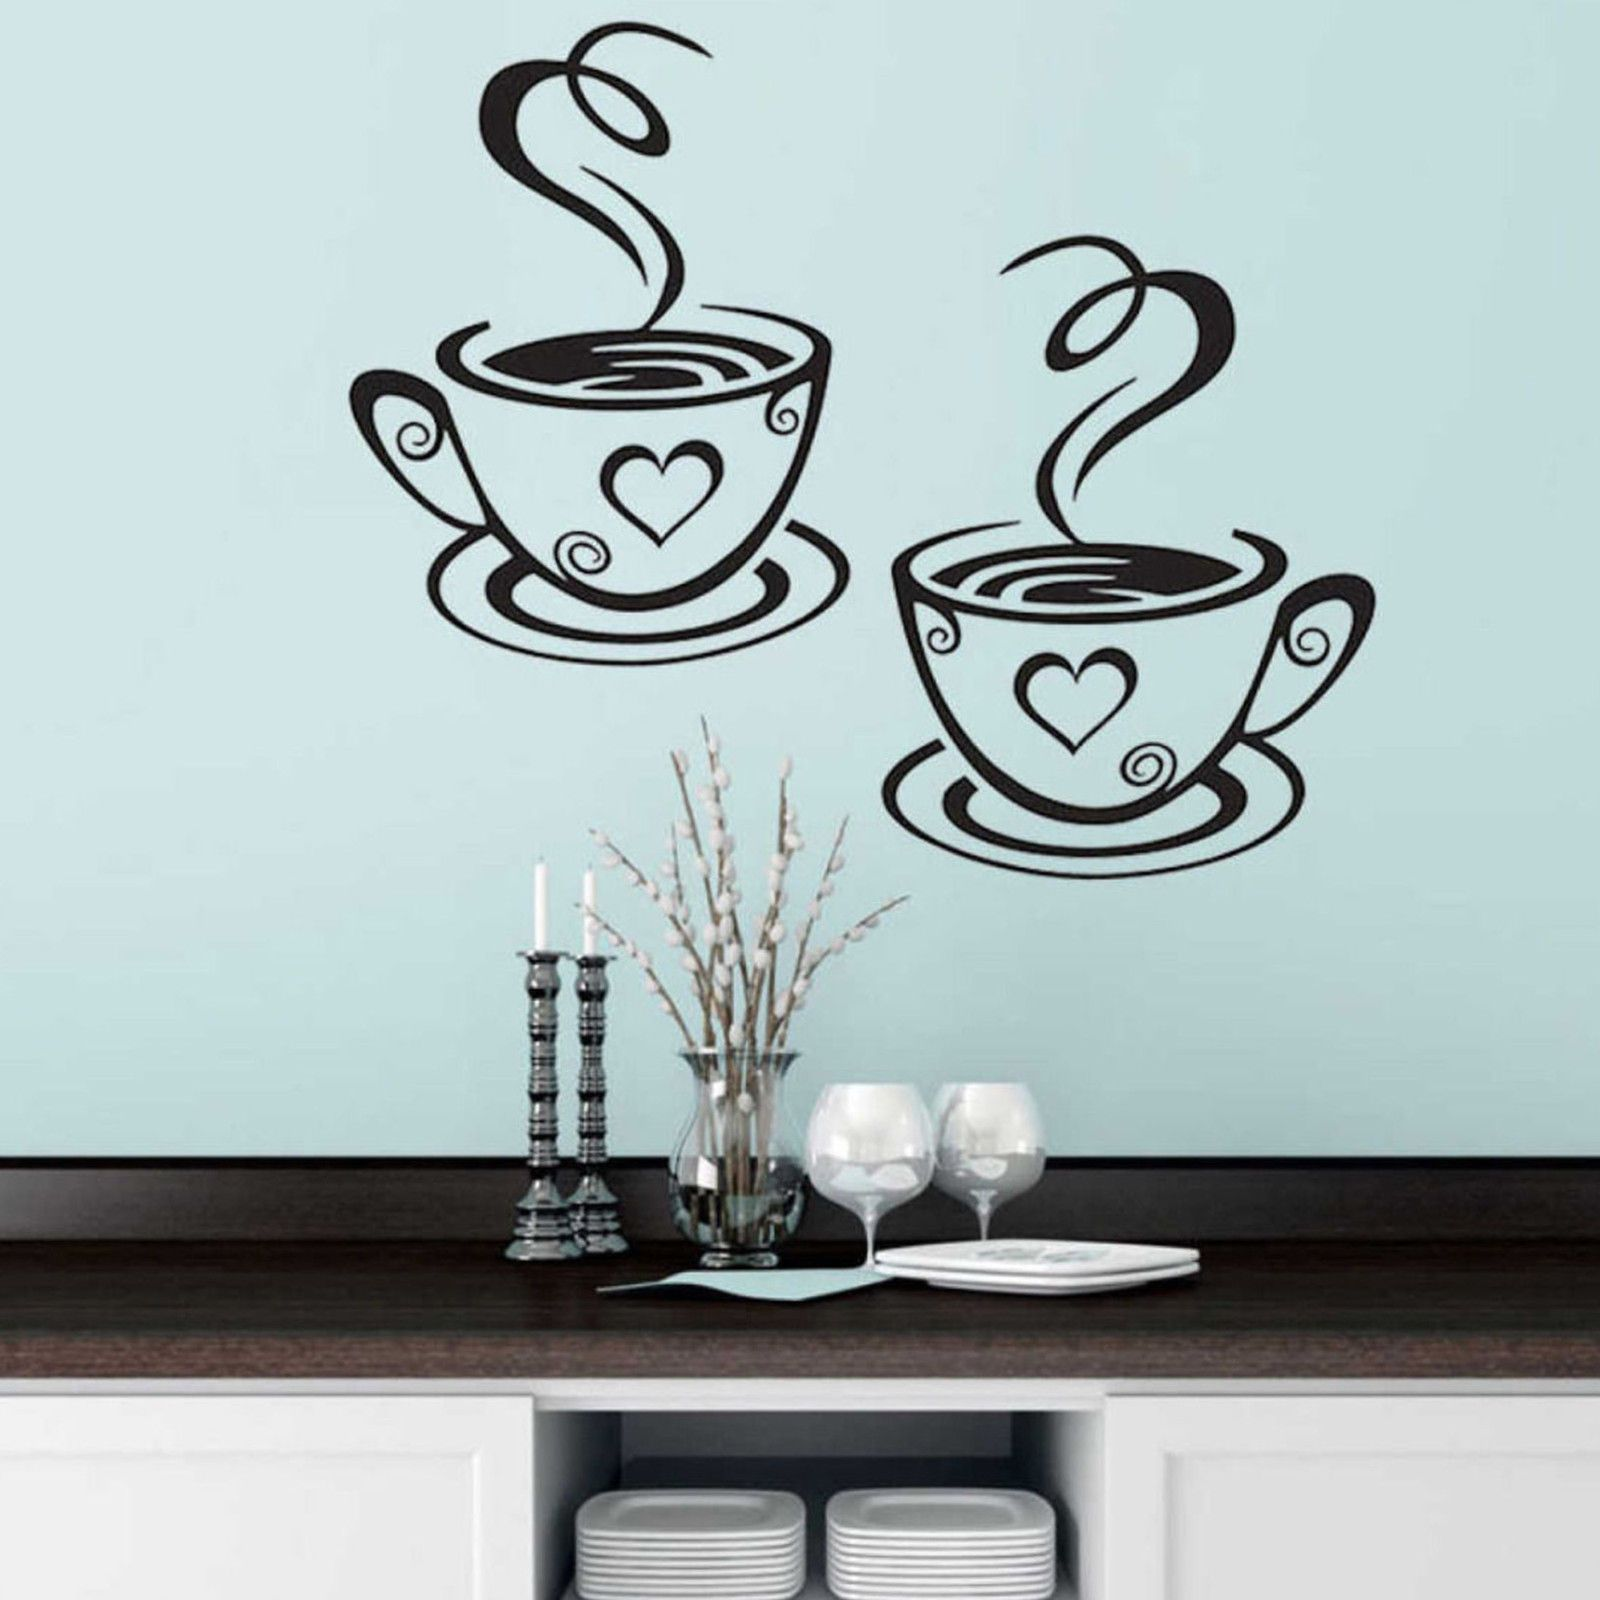 Coffee cups cafe tea wall stickers art vinyl decal kitchen